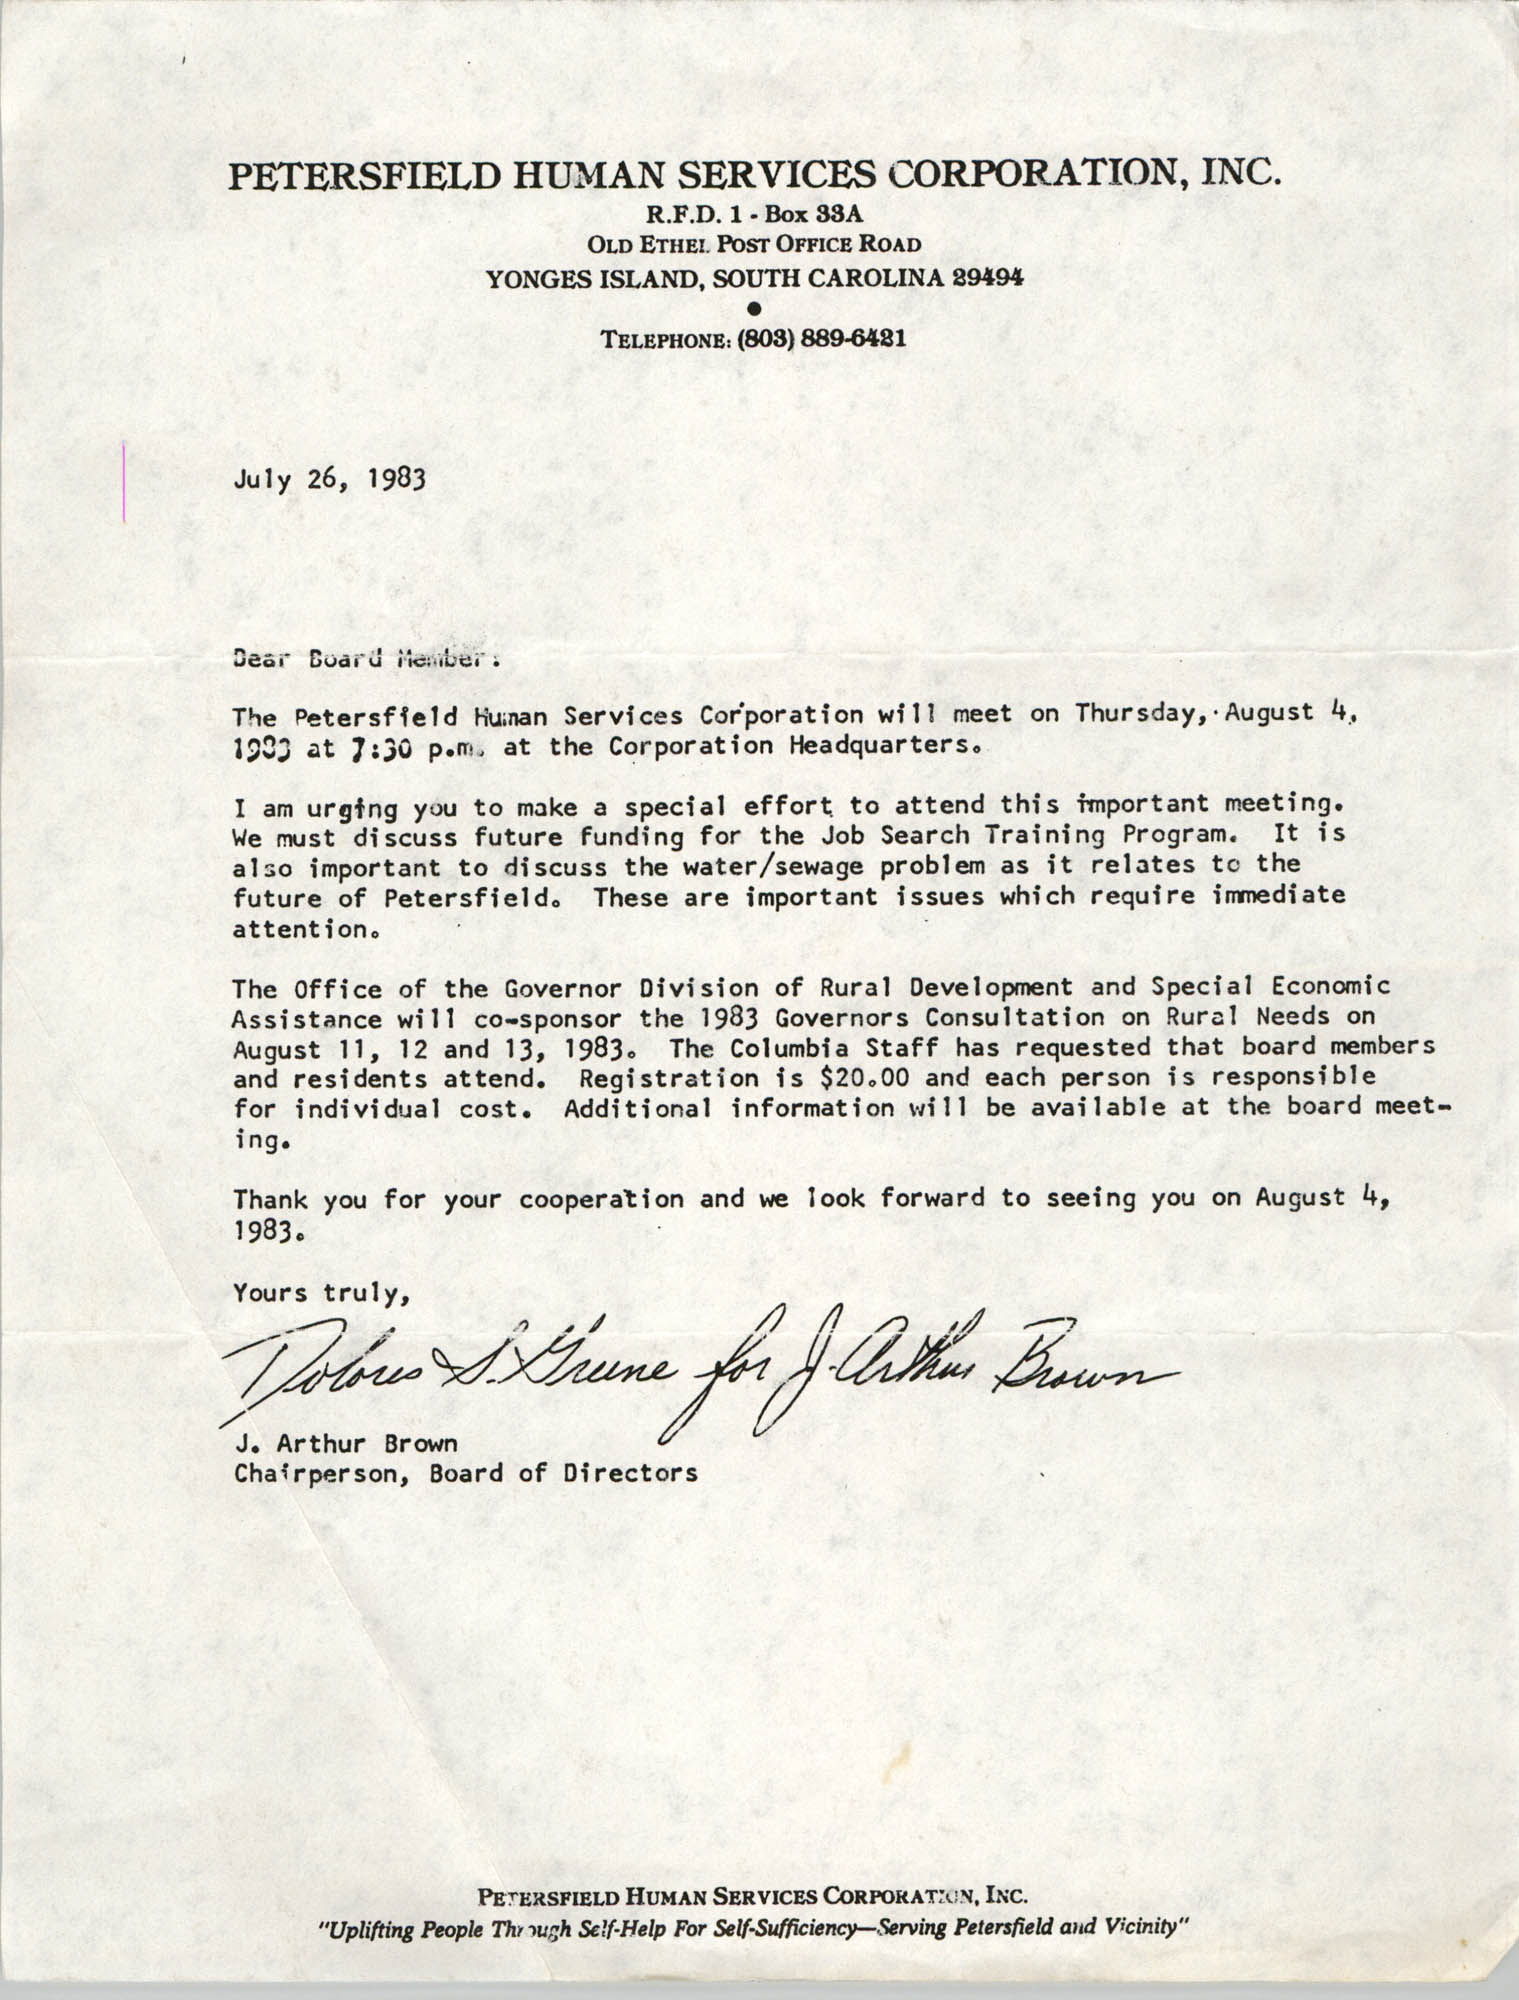 Petersfield Human Services Corporation, Inc. Memorandum, July 26, 1983